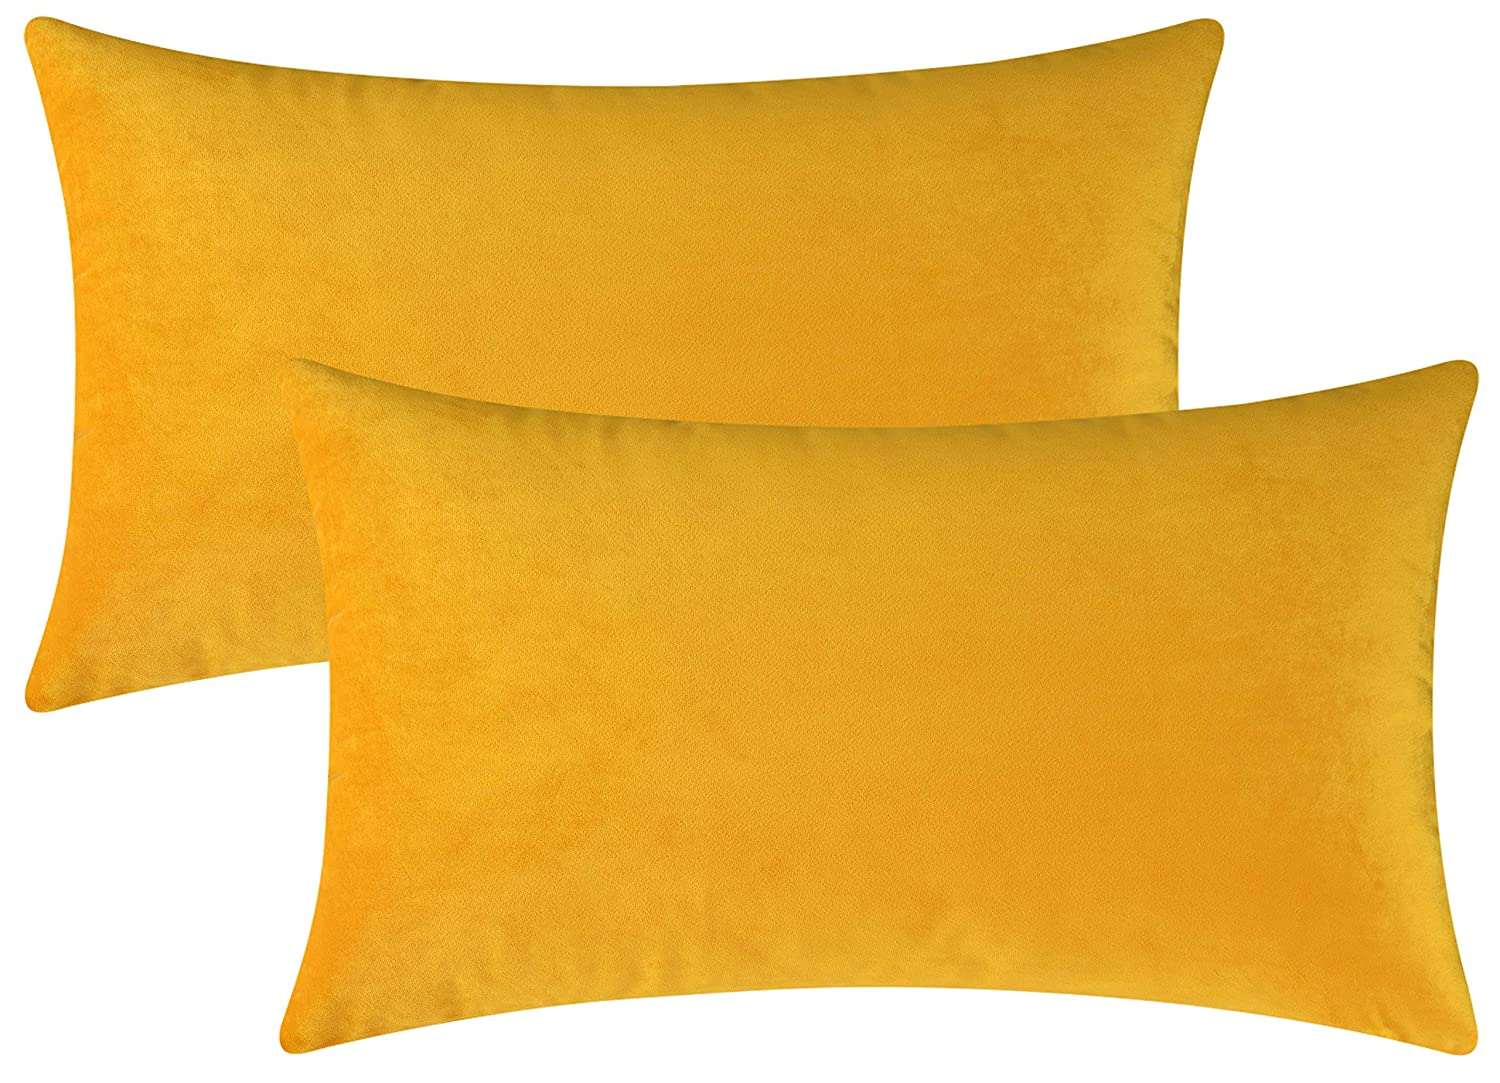 Mixhug Set of 2 Cozy Velvet Rectangle Decorative Throw Pillow Covers for Couch and Bed, Mustard Yellow, 12 x 20 Inches